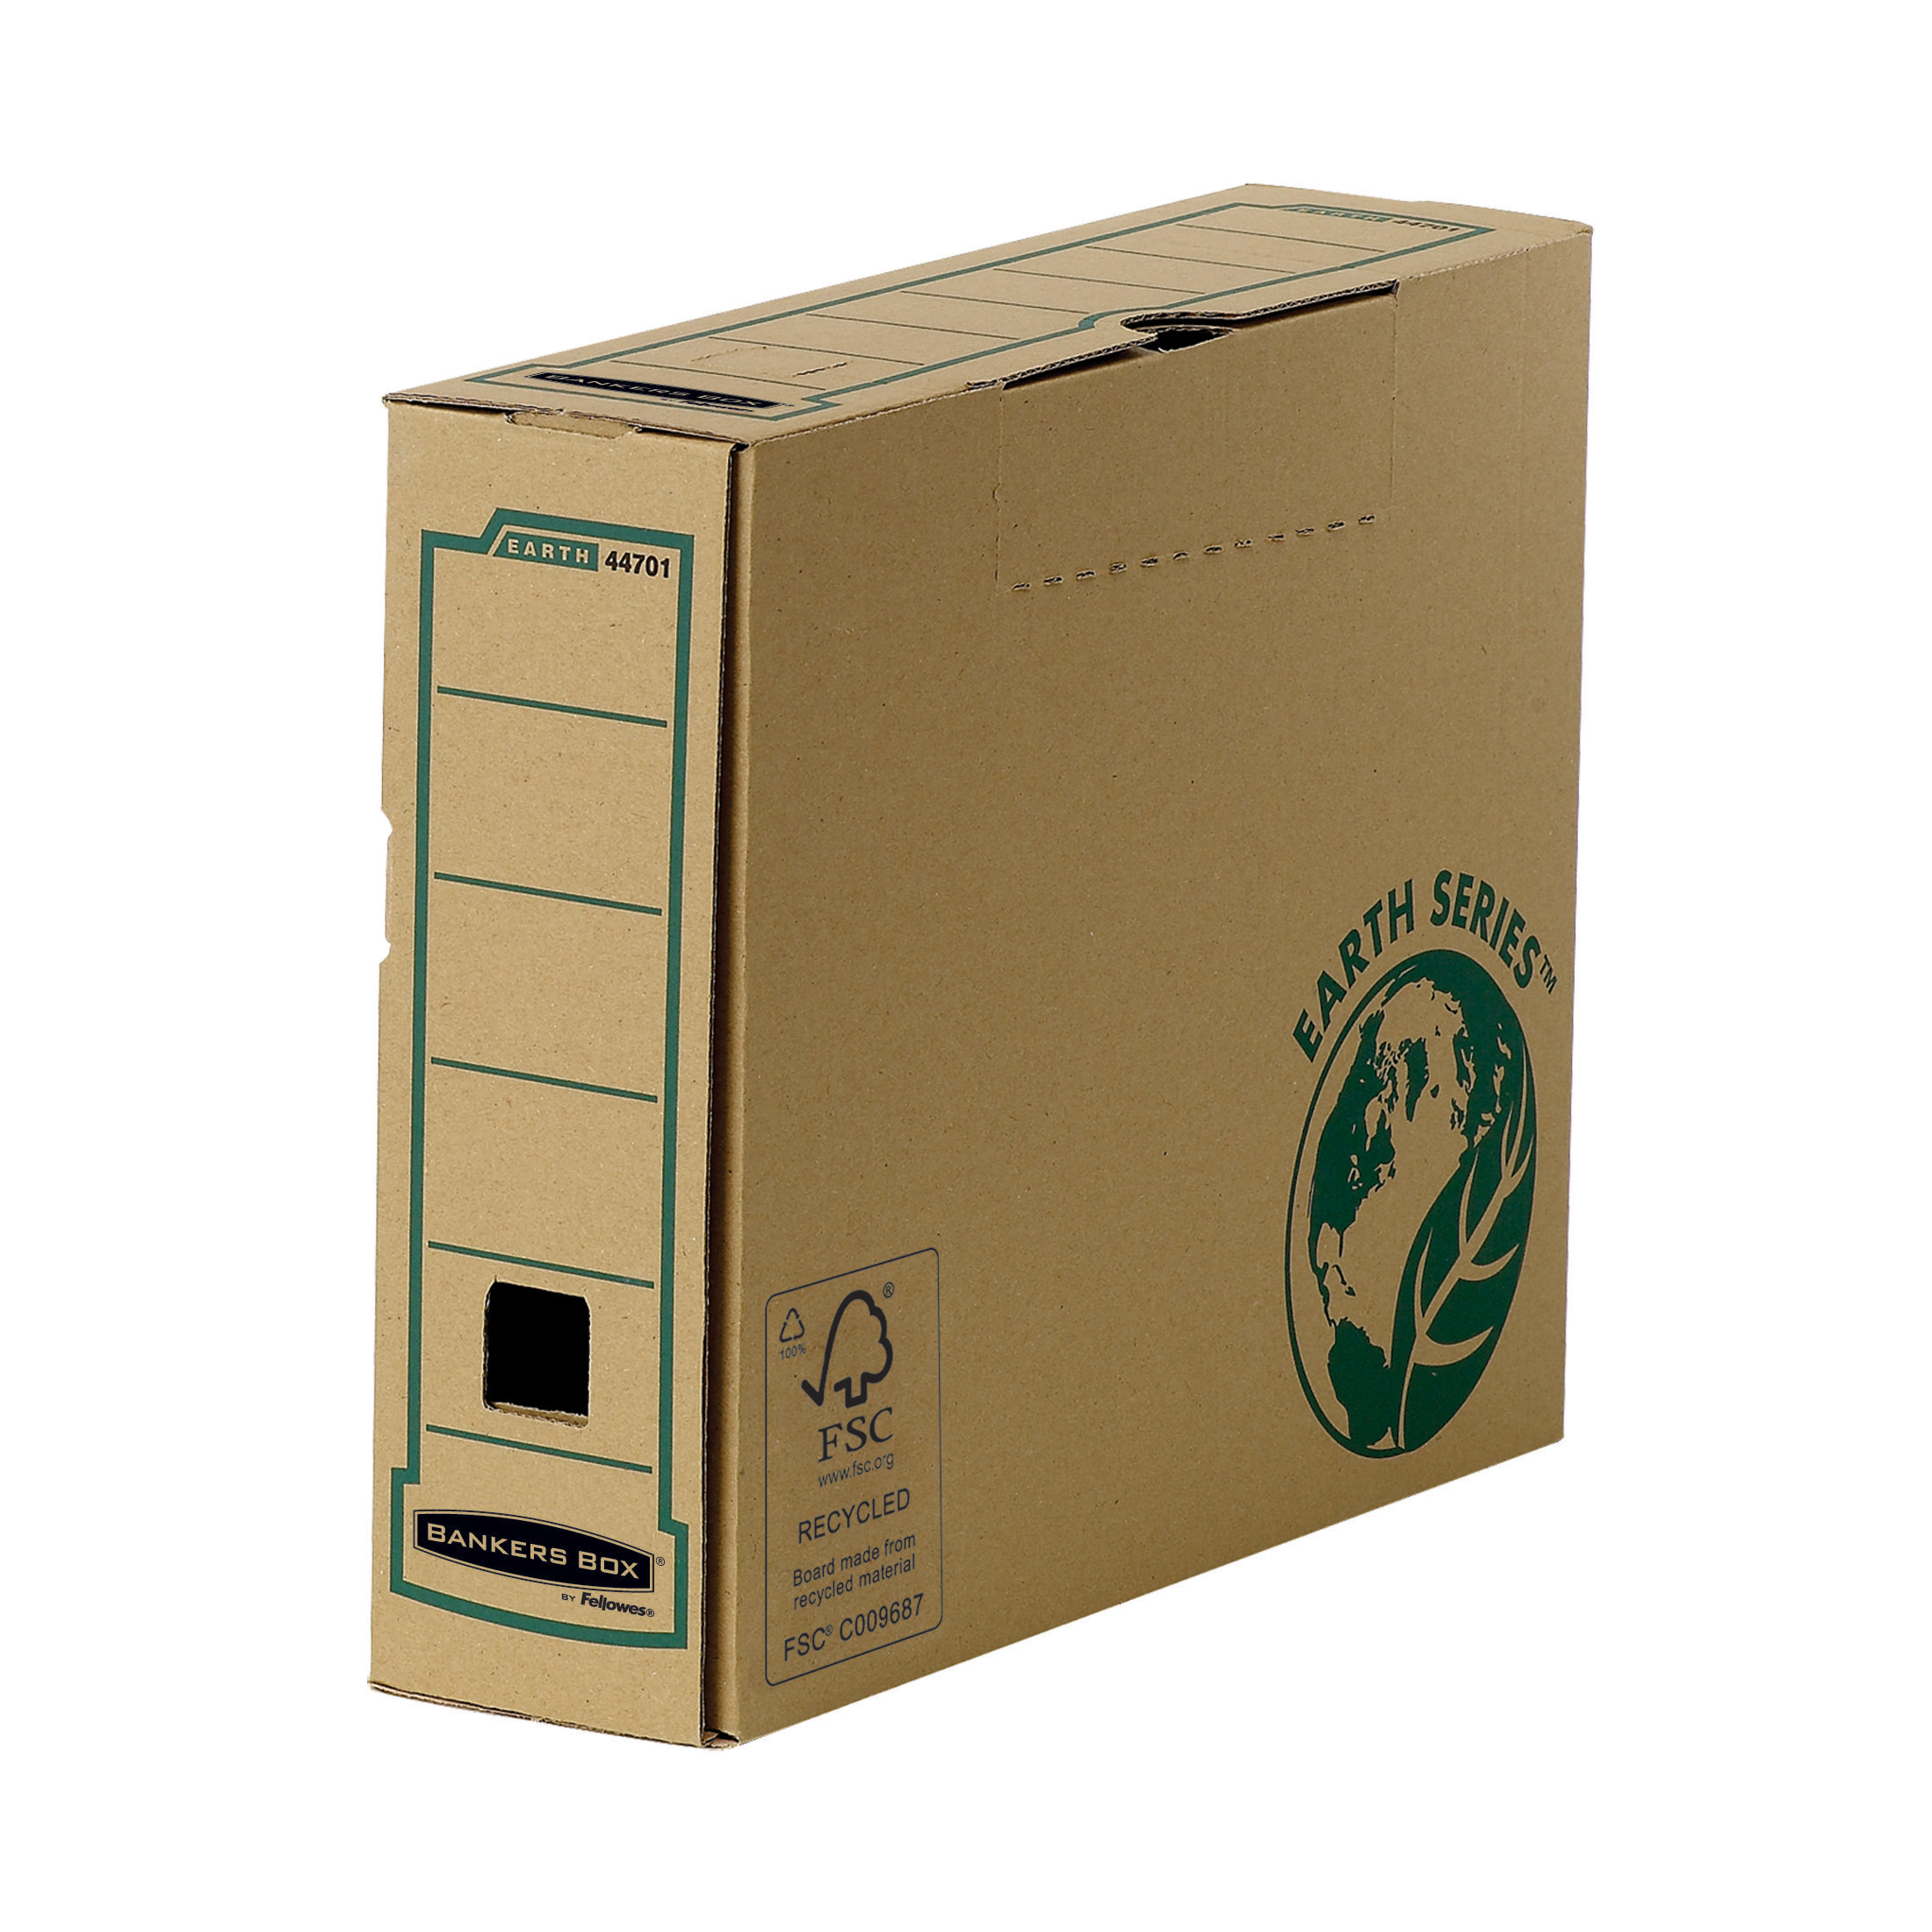 Transfer Files Bankers Box by Fellowes Earth Srs Transfer Bx File Rcyc FSC Tab Lock Lid W80mm A4 Ref 4470101 Pack 20